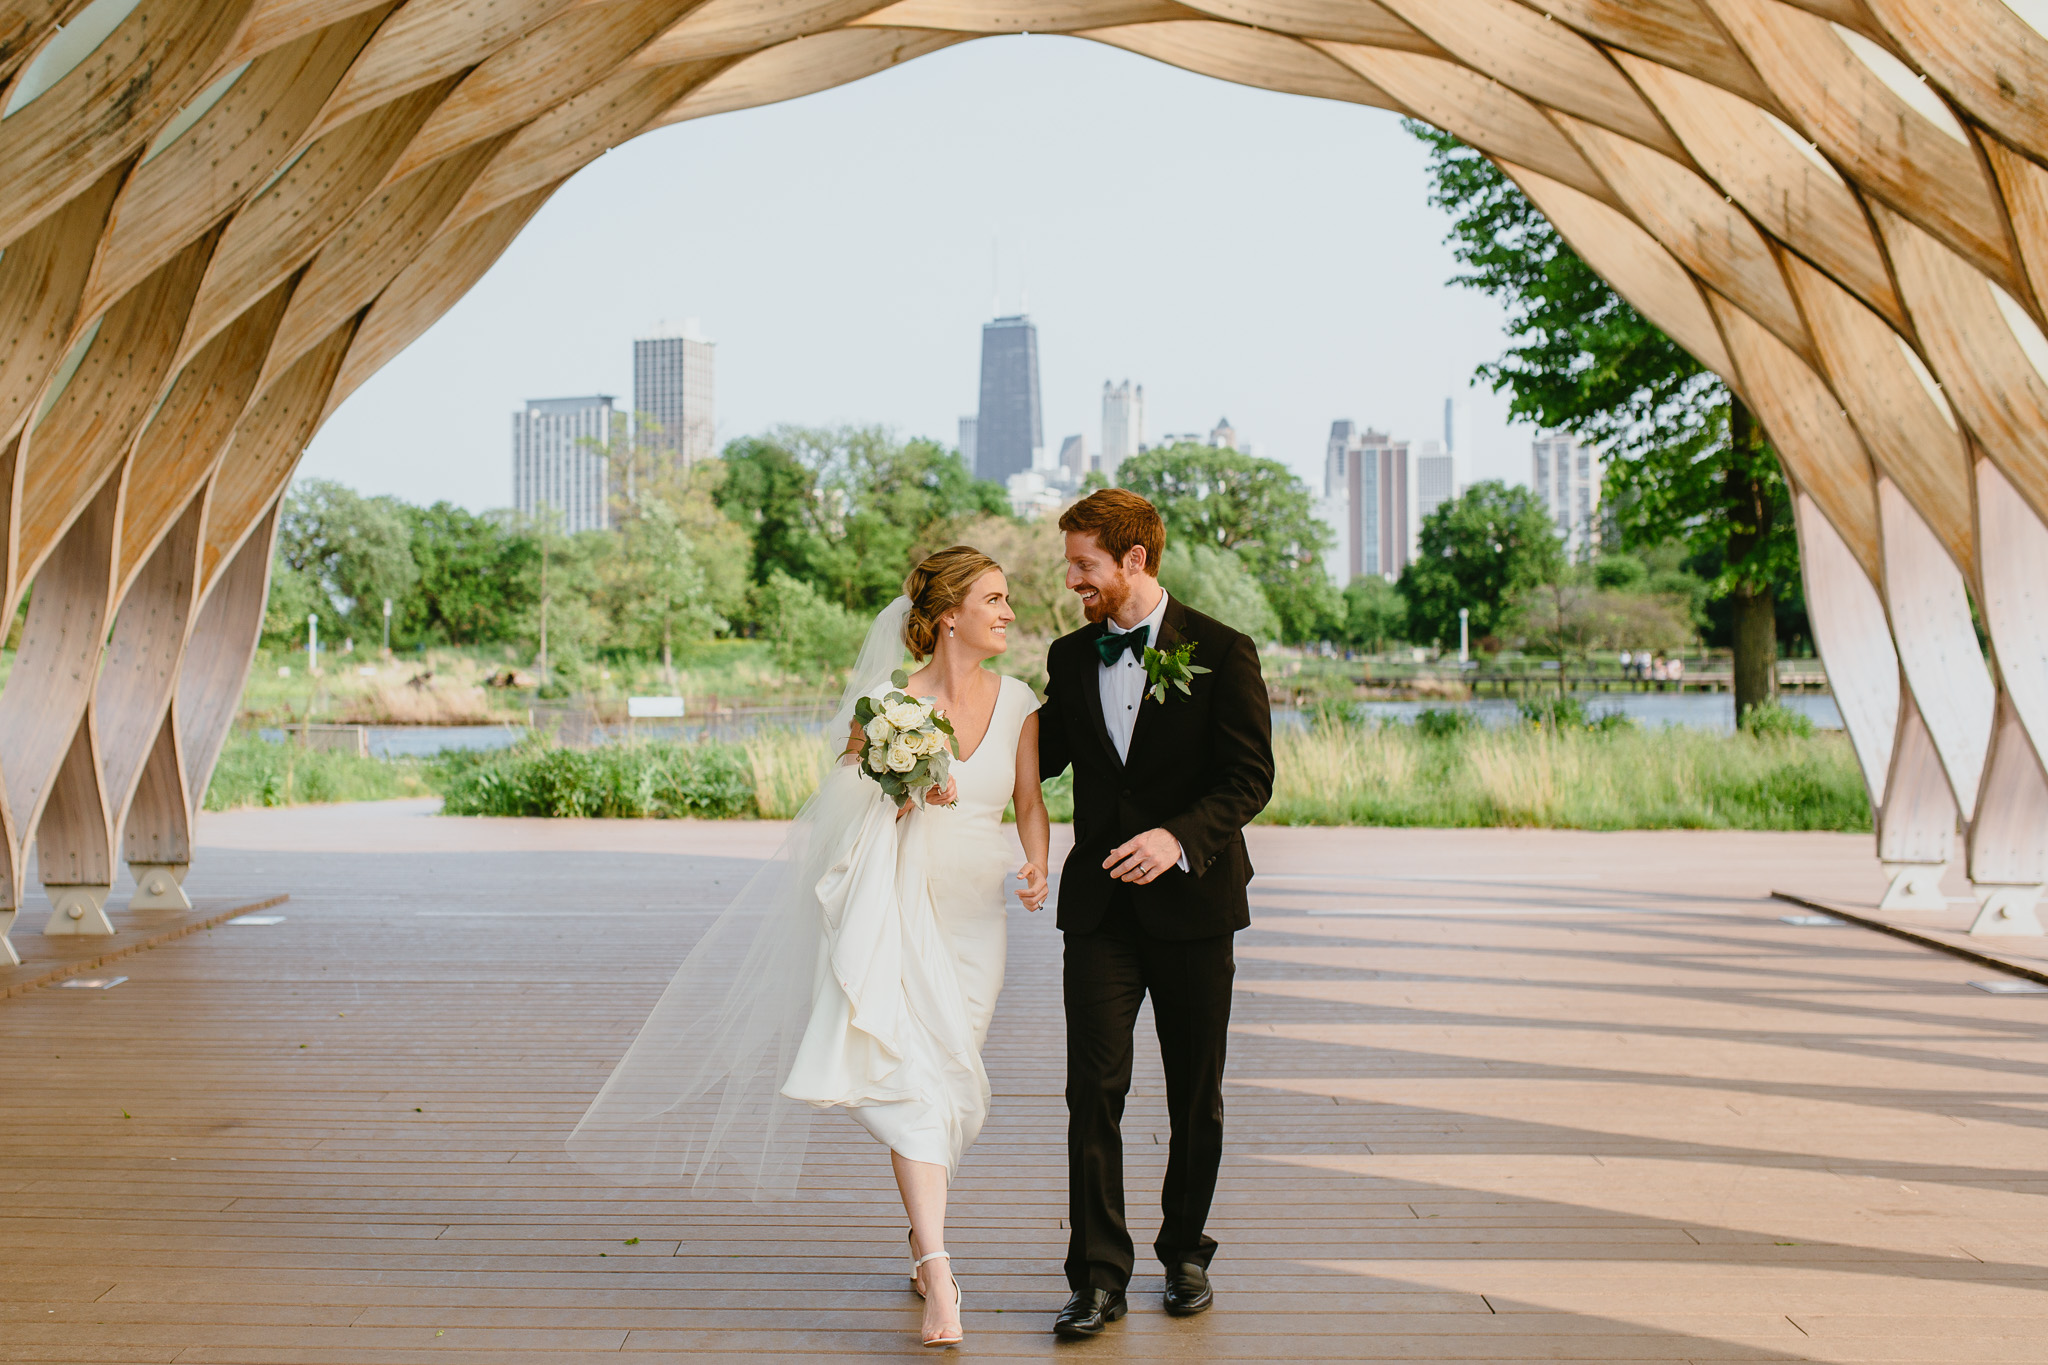 Wedding portraits at Lincoln Park, Chicago